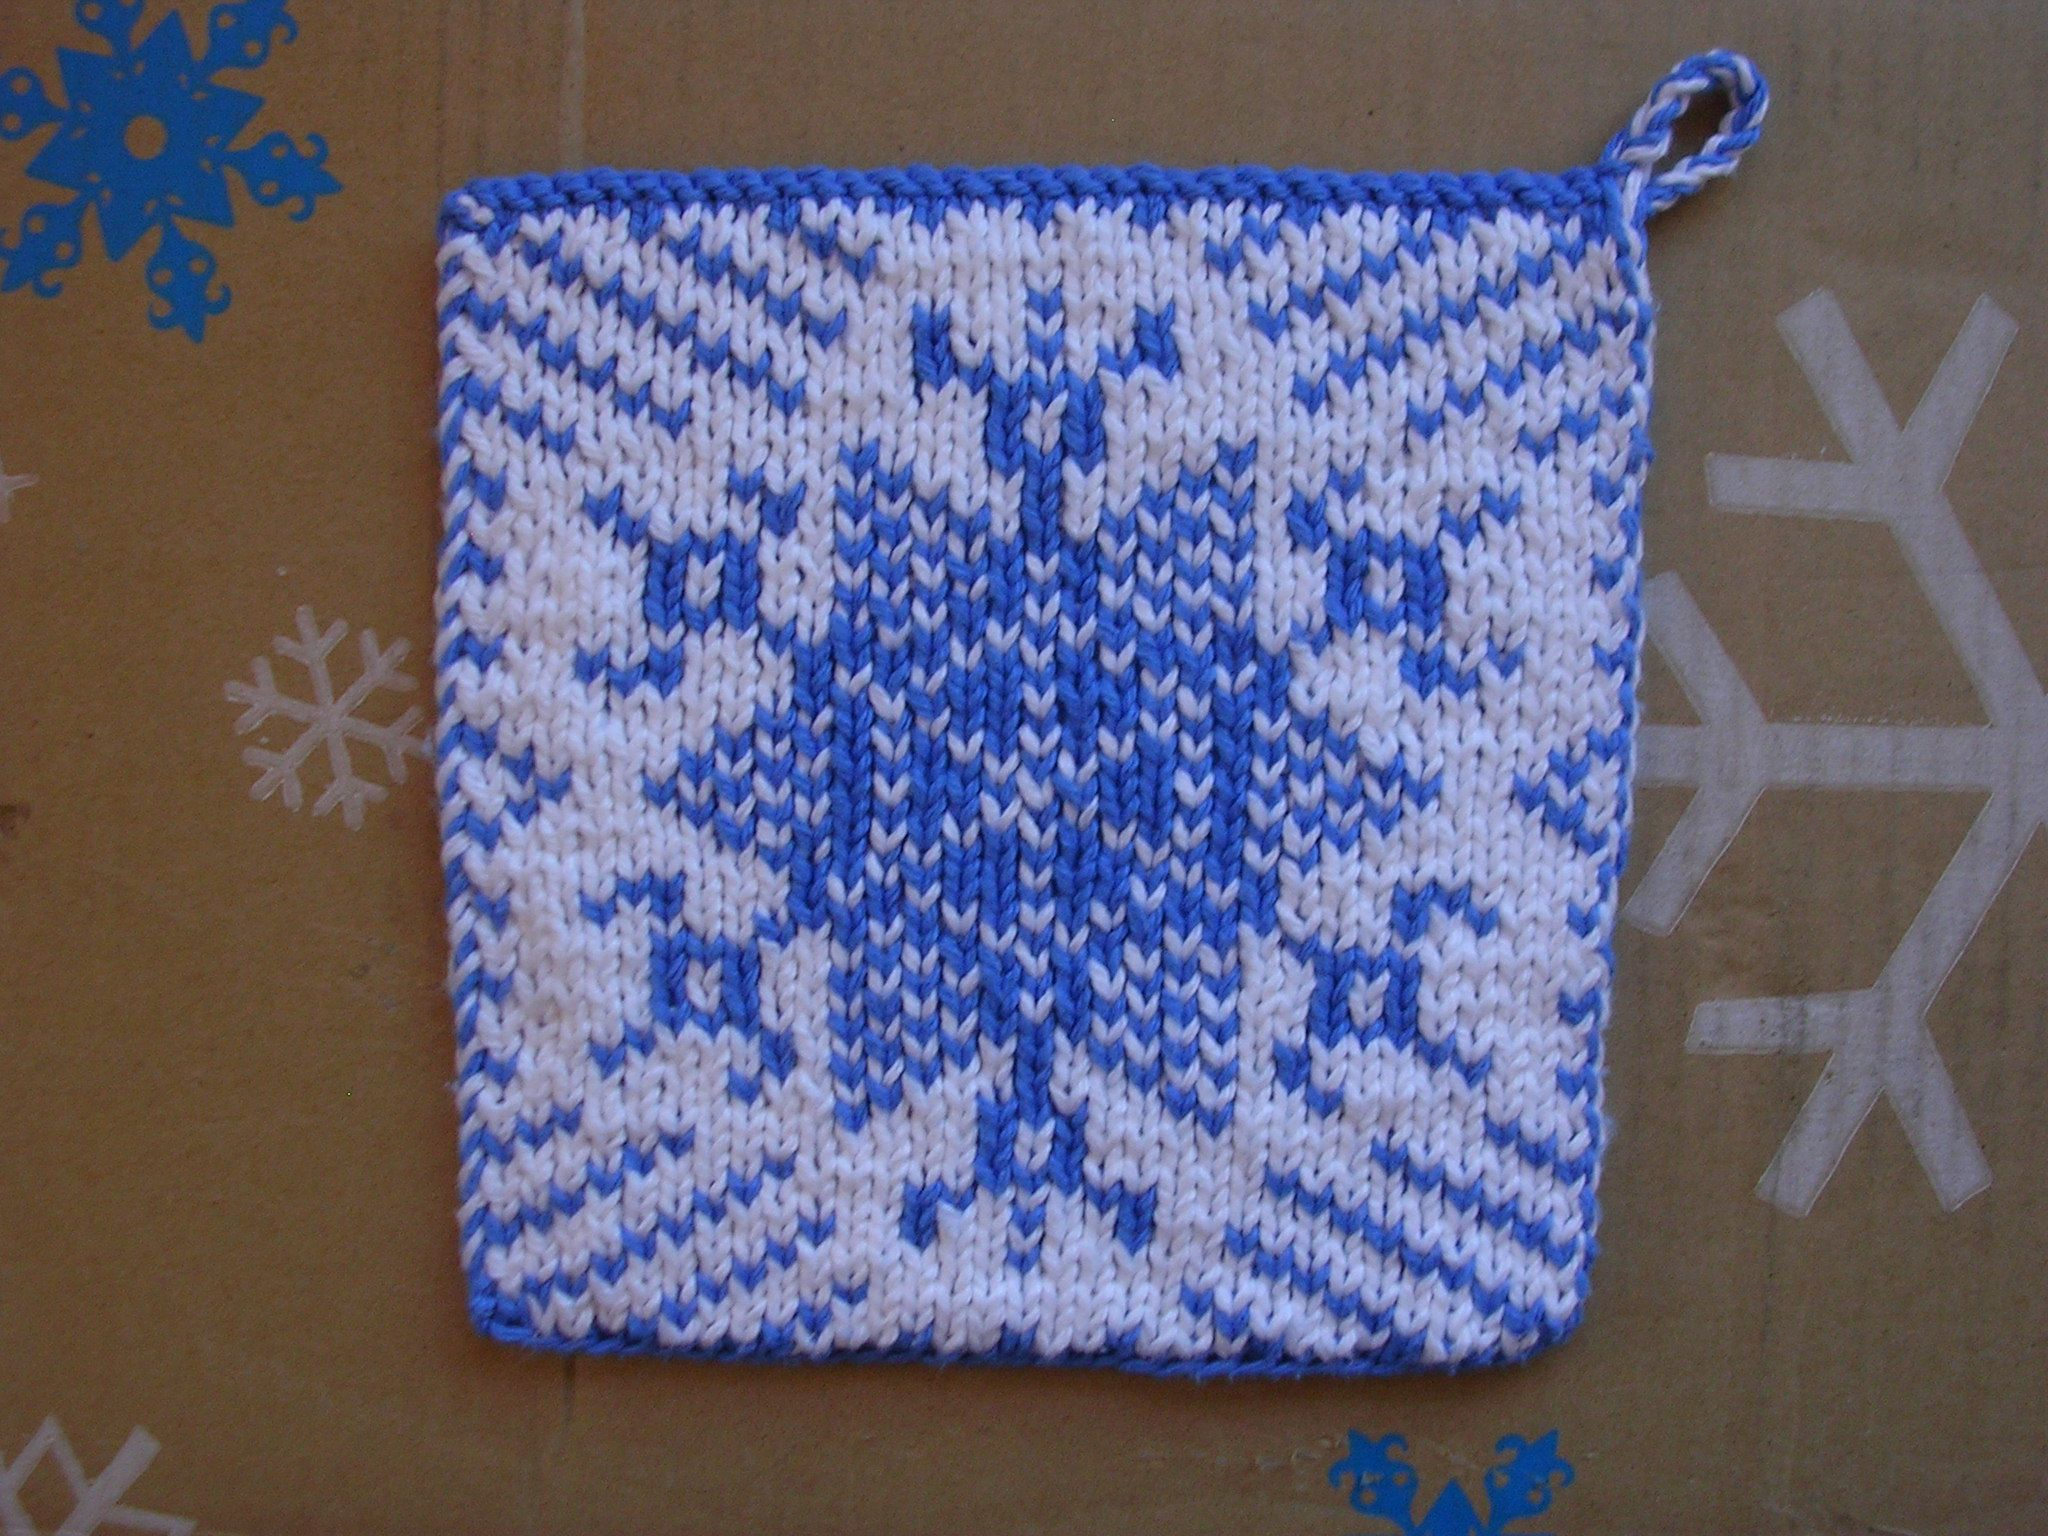 Snowflake Pot Holder double knitting FREE PATTERN by Sue Gregori ...